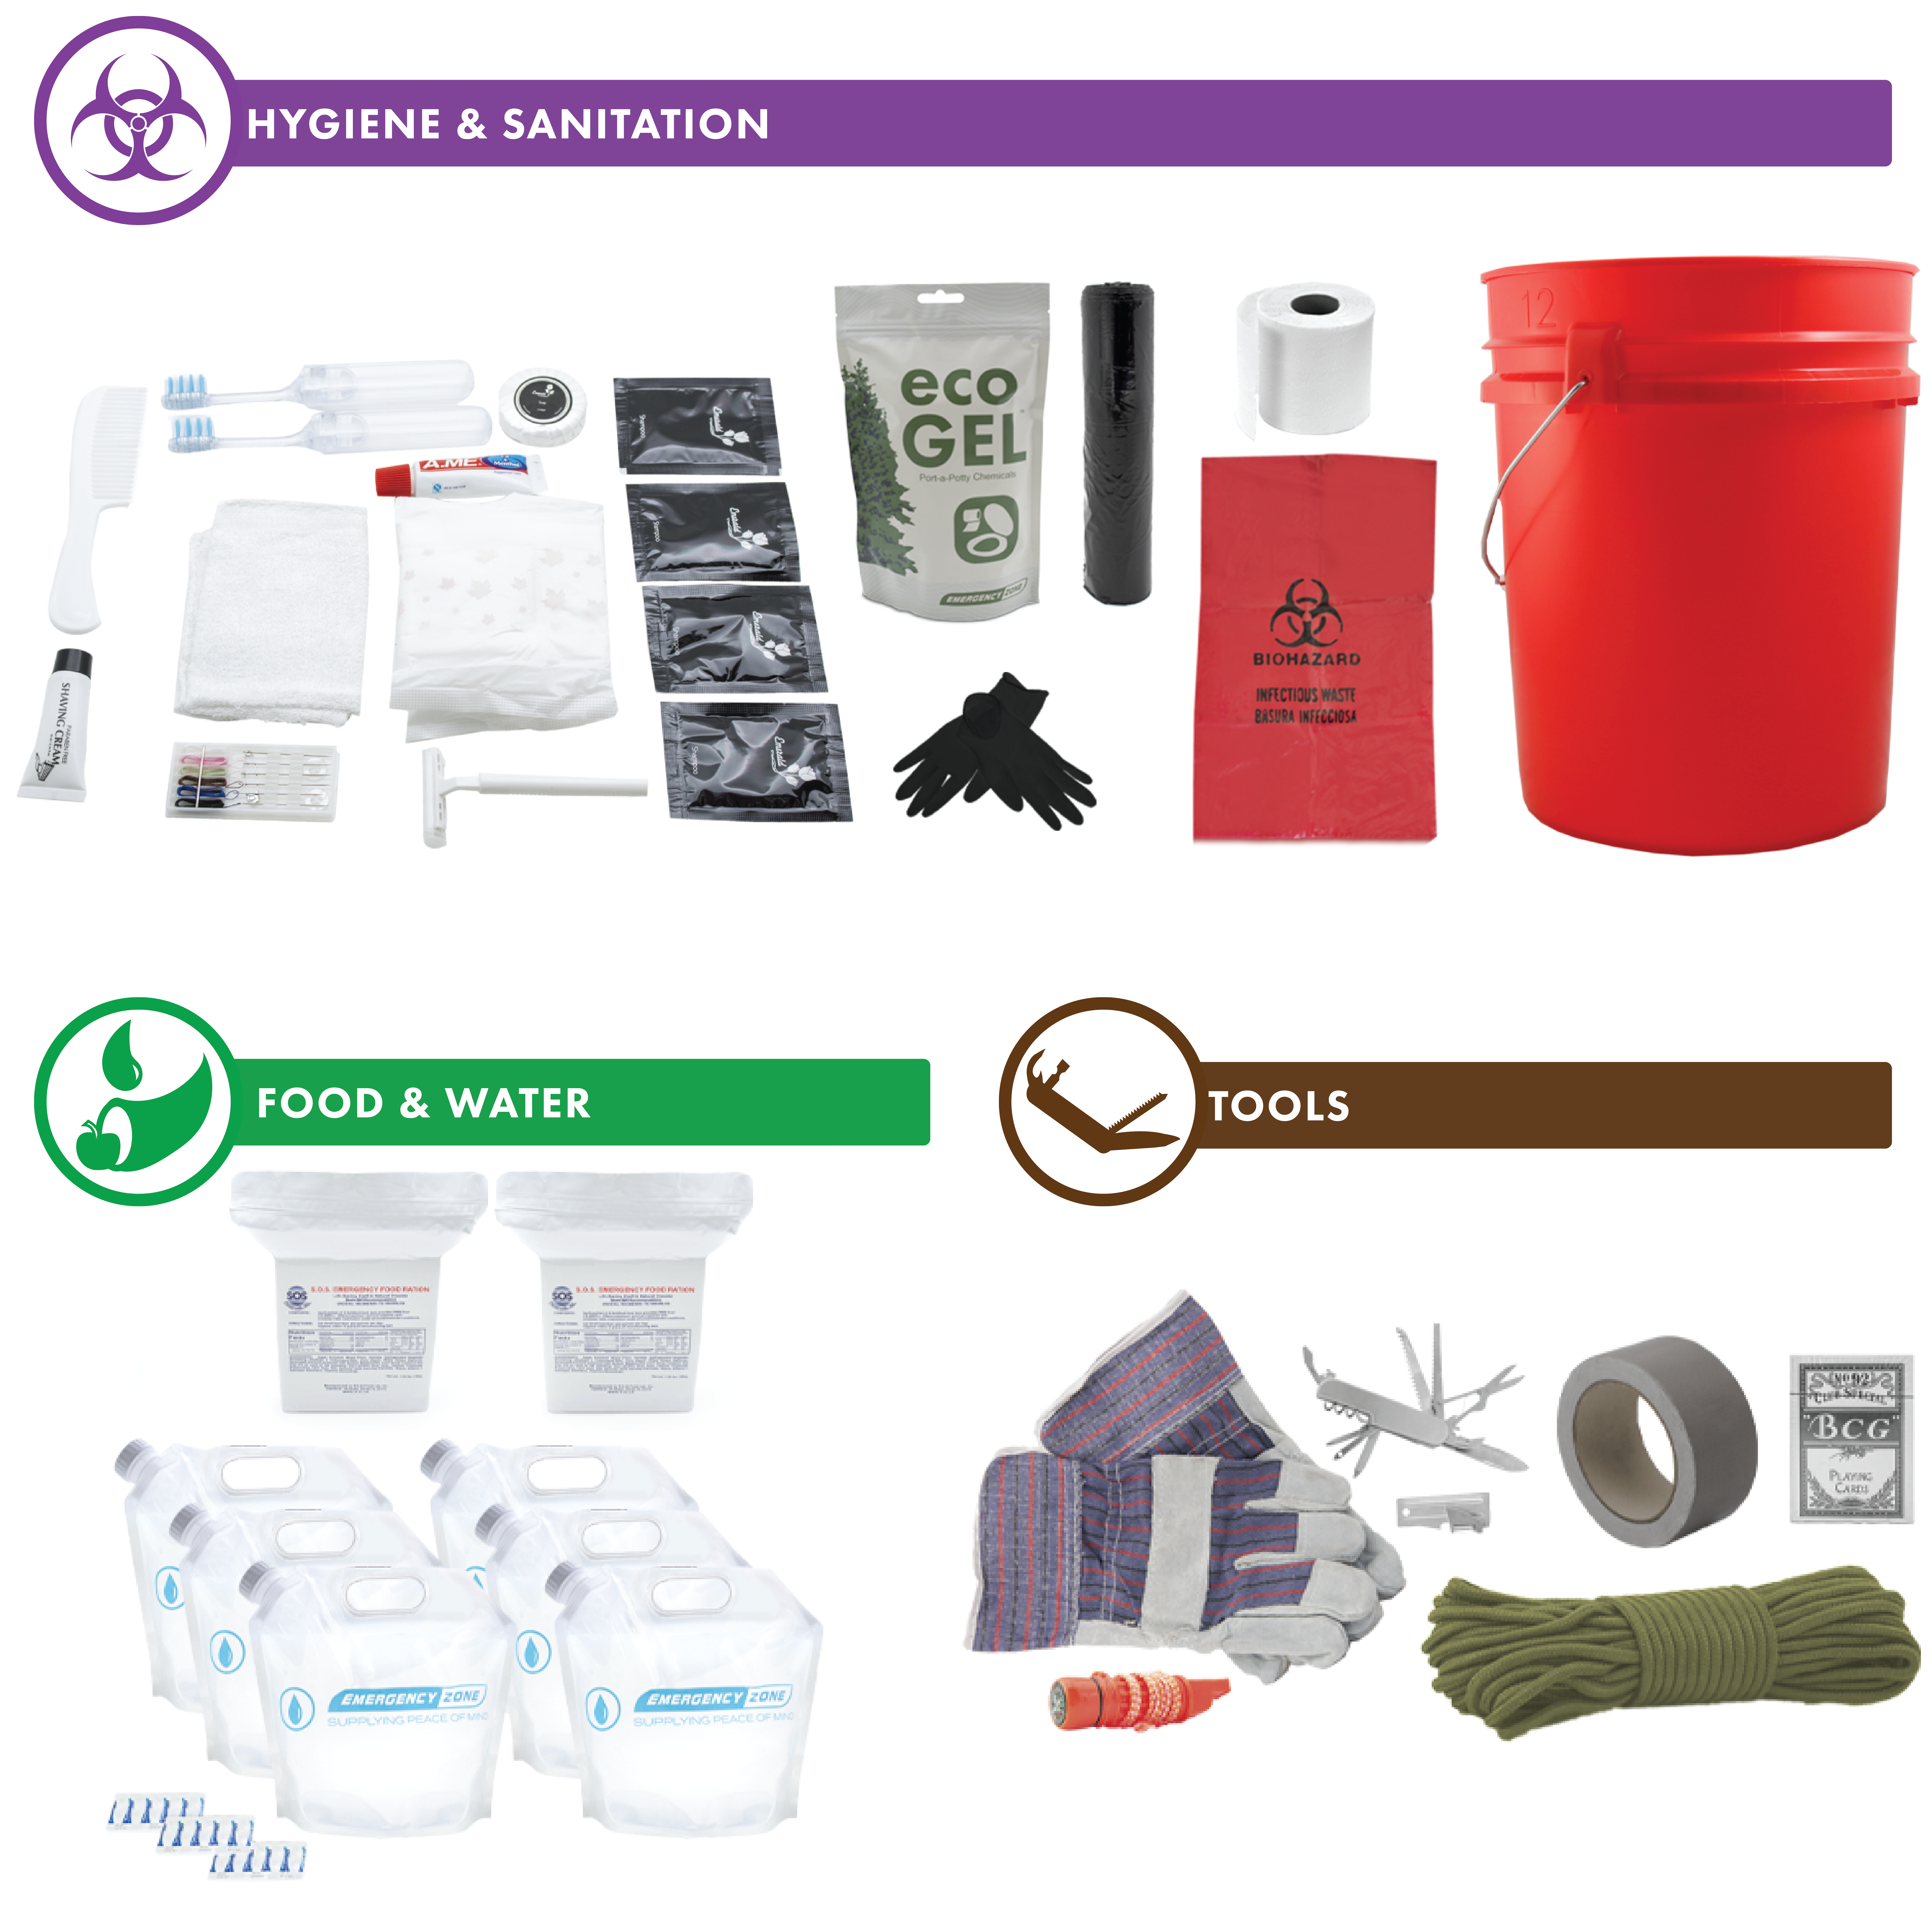 ygiene and Sanitation - Food and Water - Tools